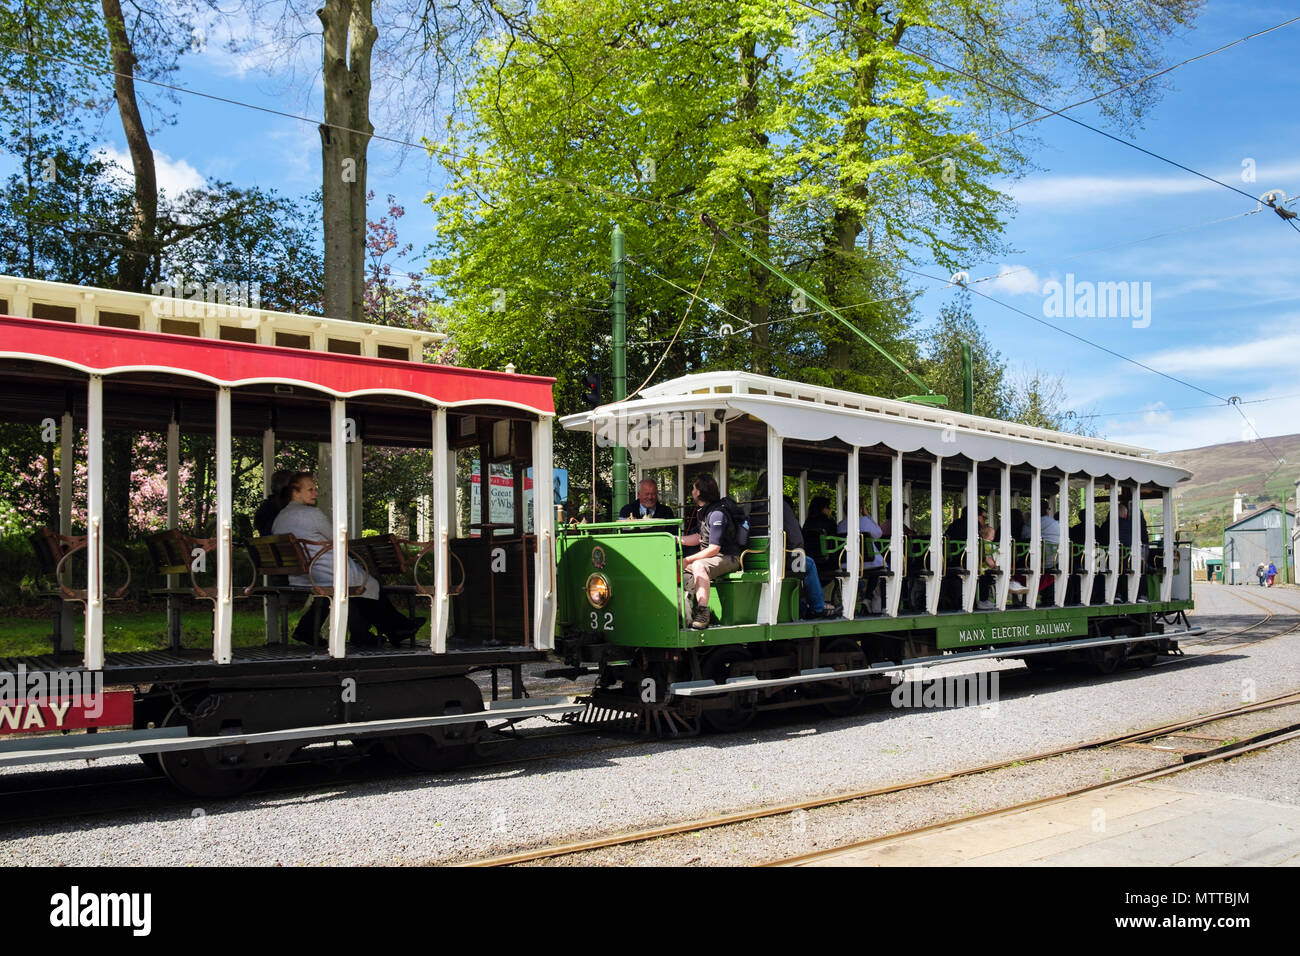 Manx Electric Railway train carriages leaving station in Laxey, Isle of Man, British Isles - Stock Image